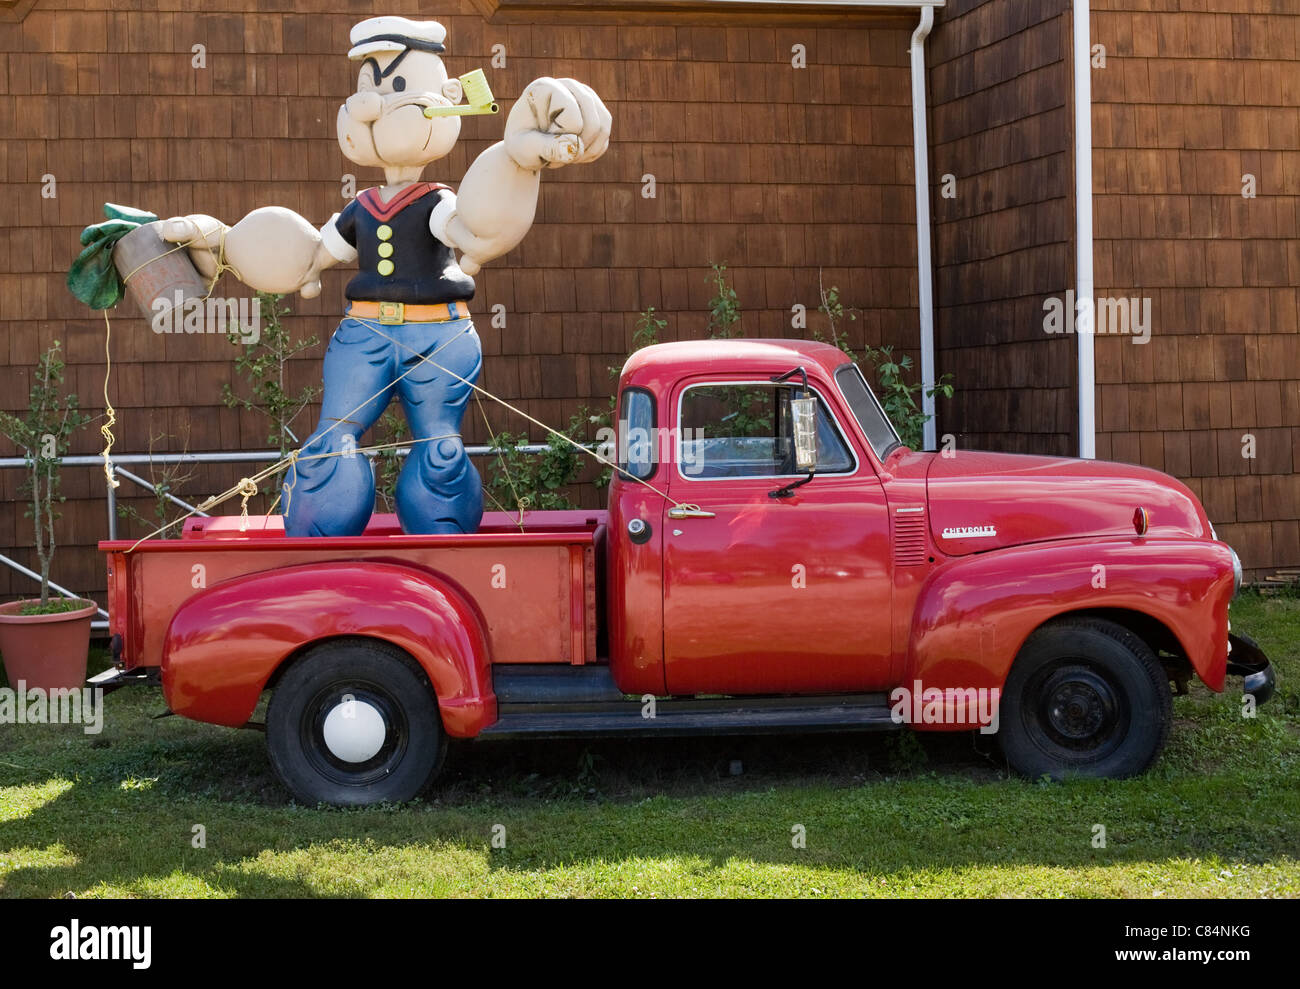 Popeye statue, pickup truck, near Riverhead, North Fork, Long Island, New York - Stock Image